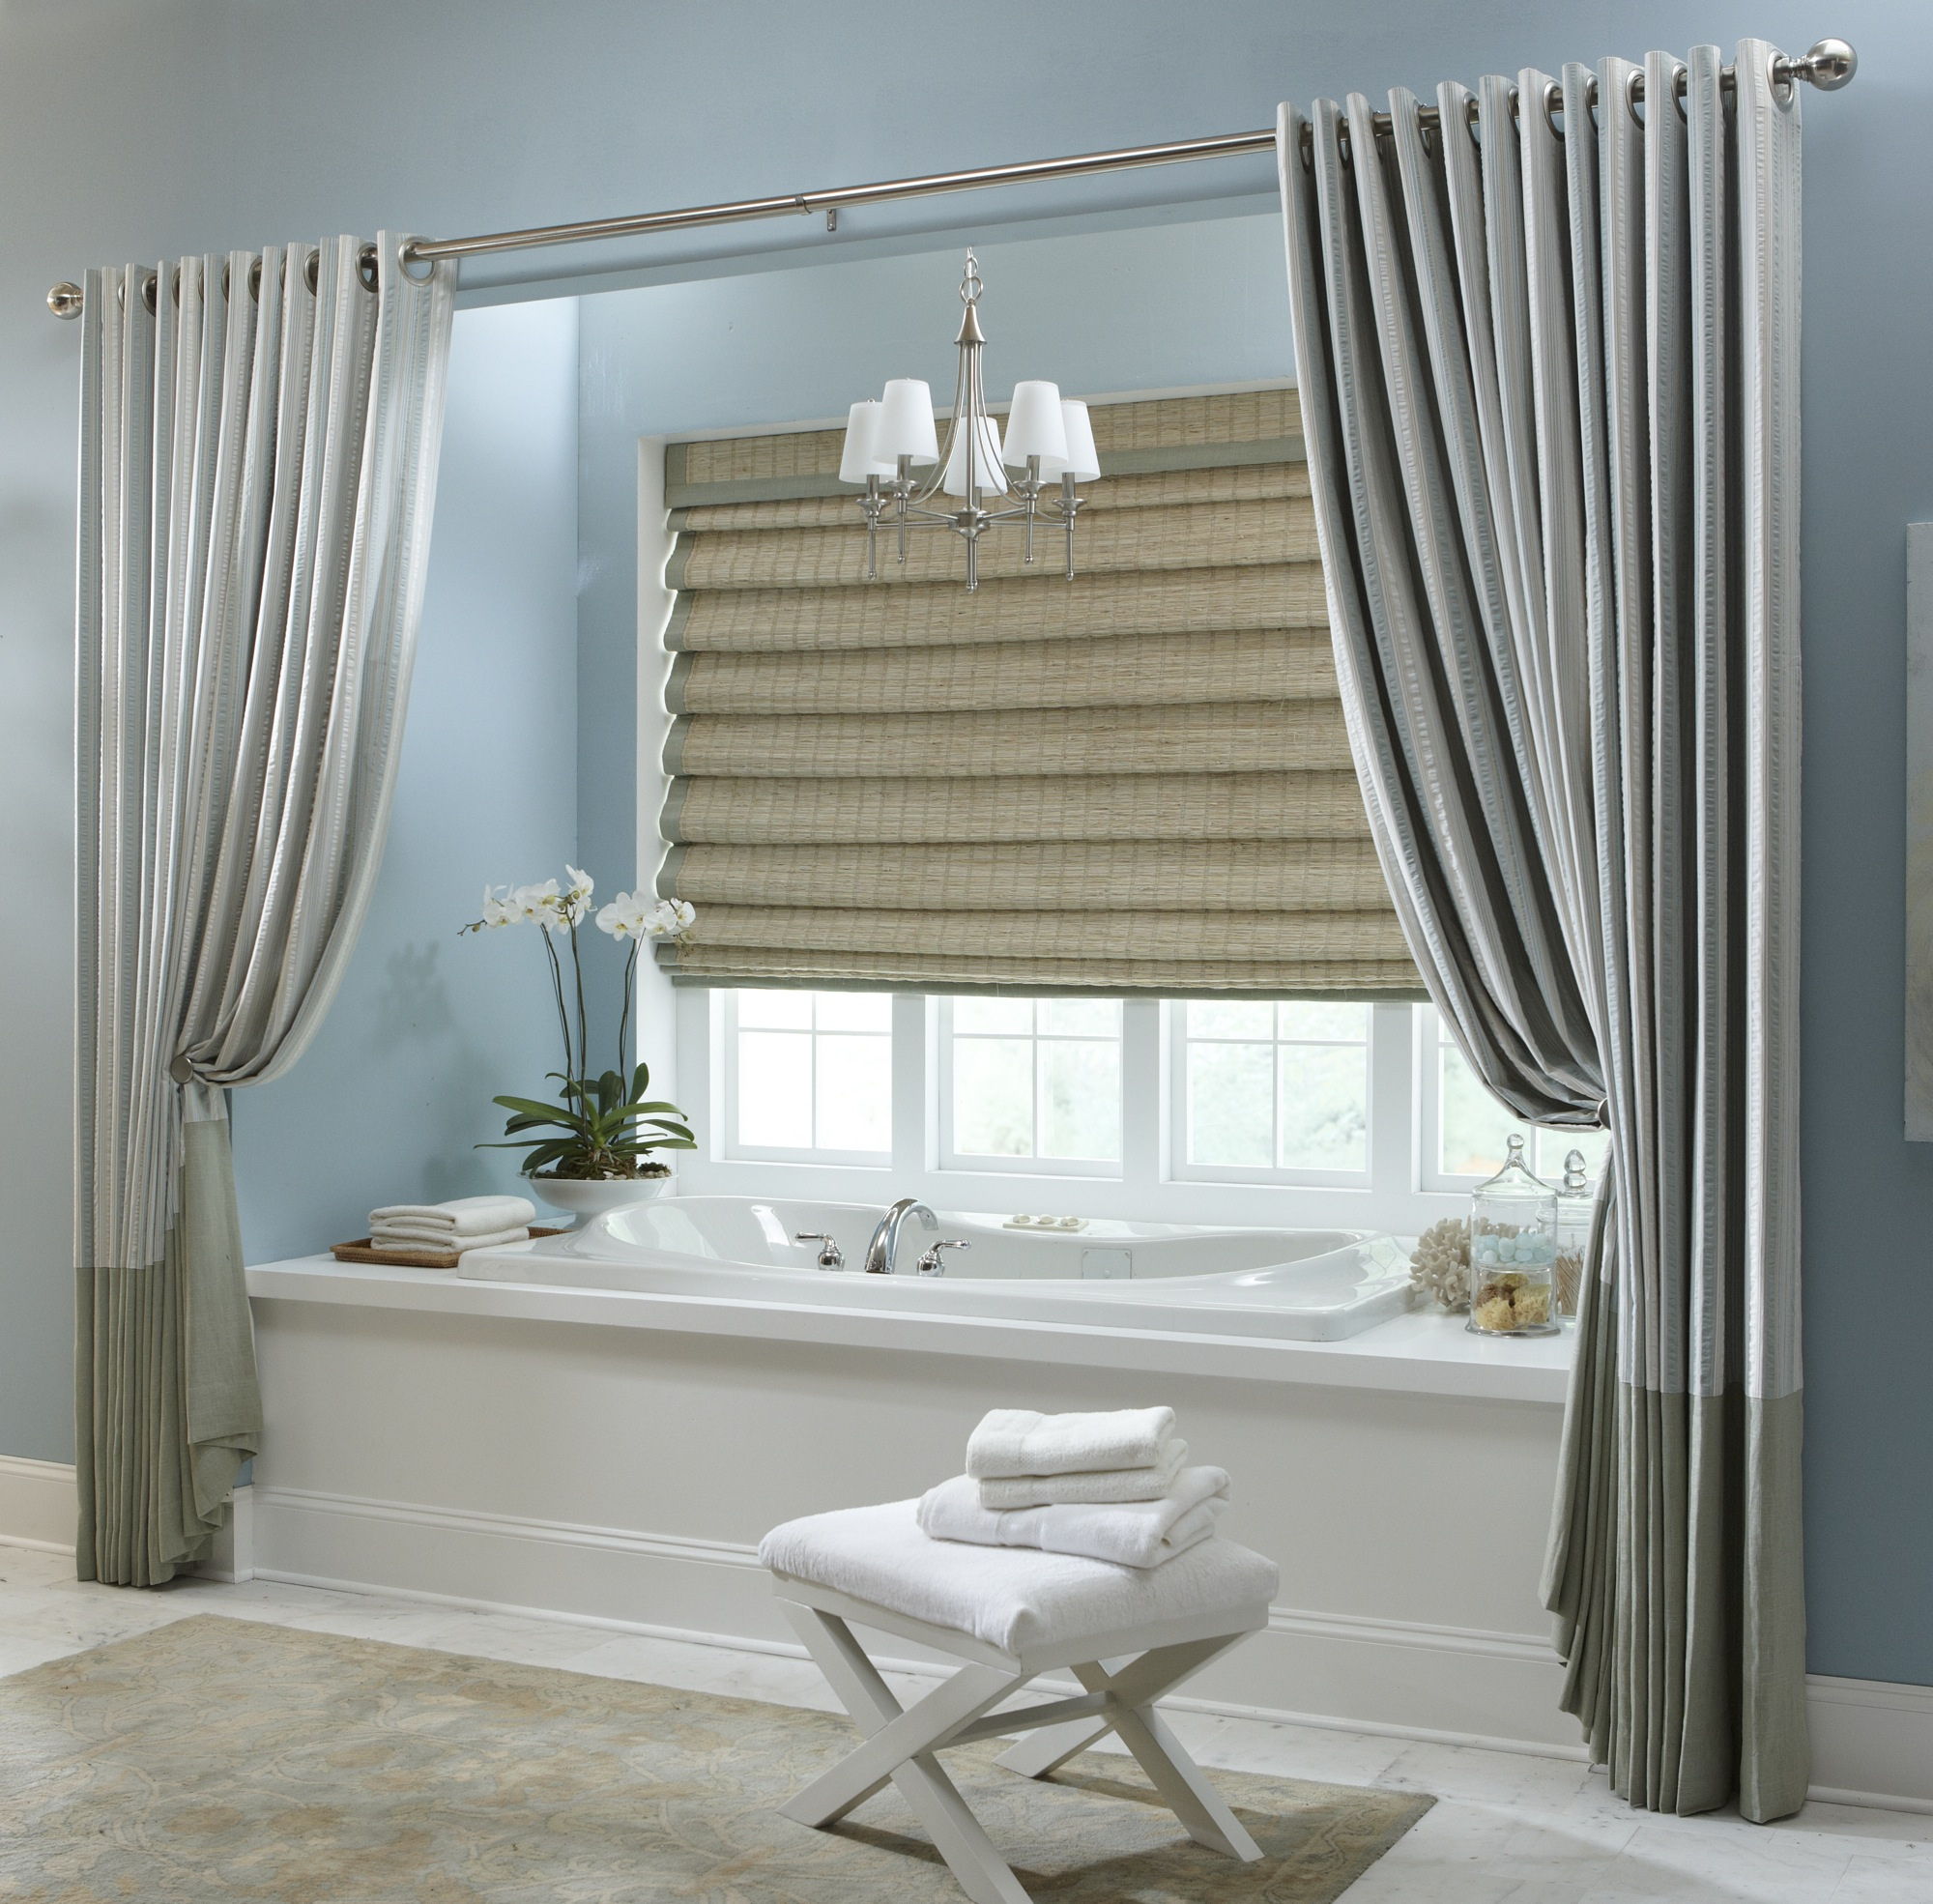 Bathroom Curtain Ideas Pictures : Shower curtiains tanner meyer